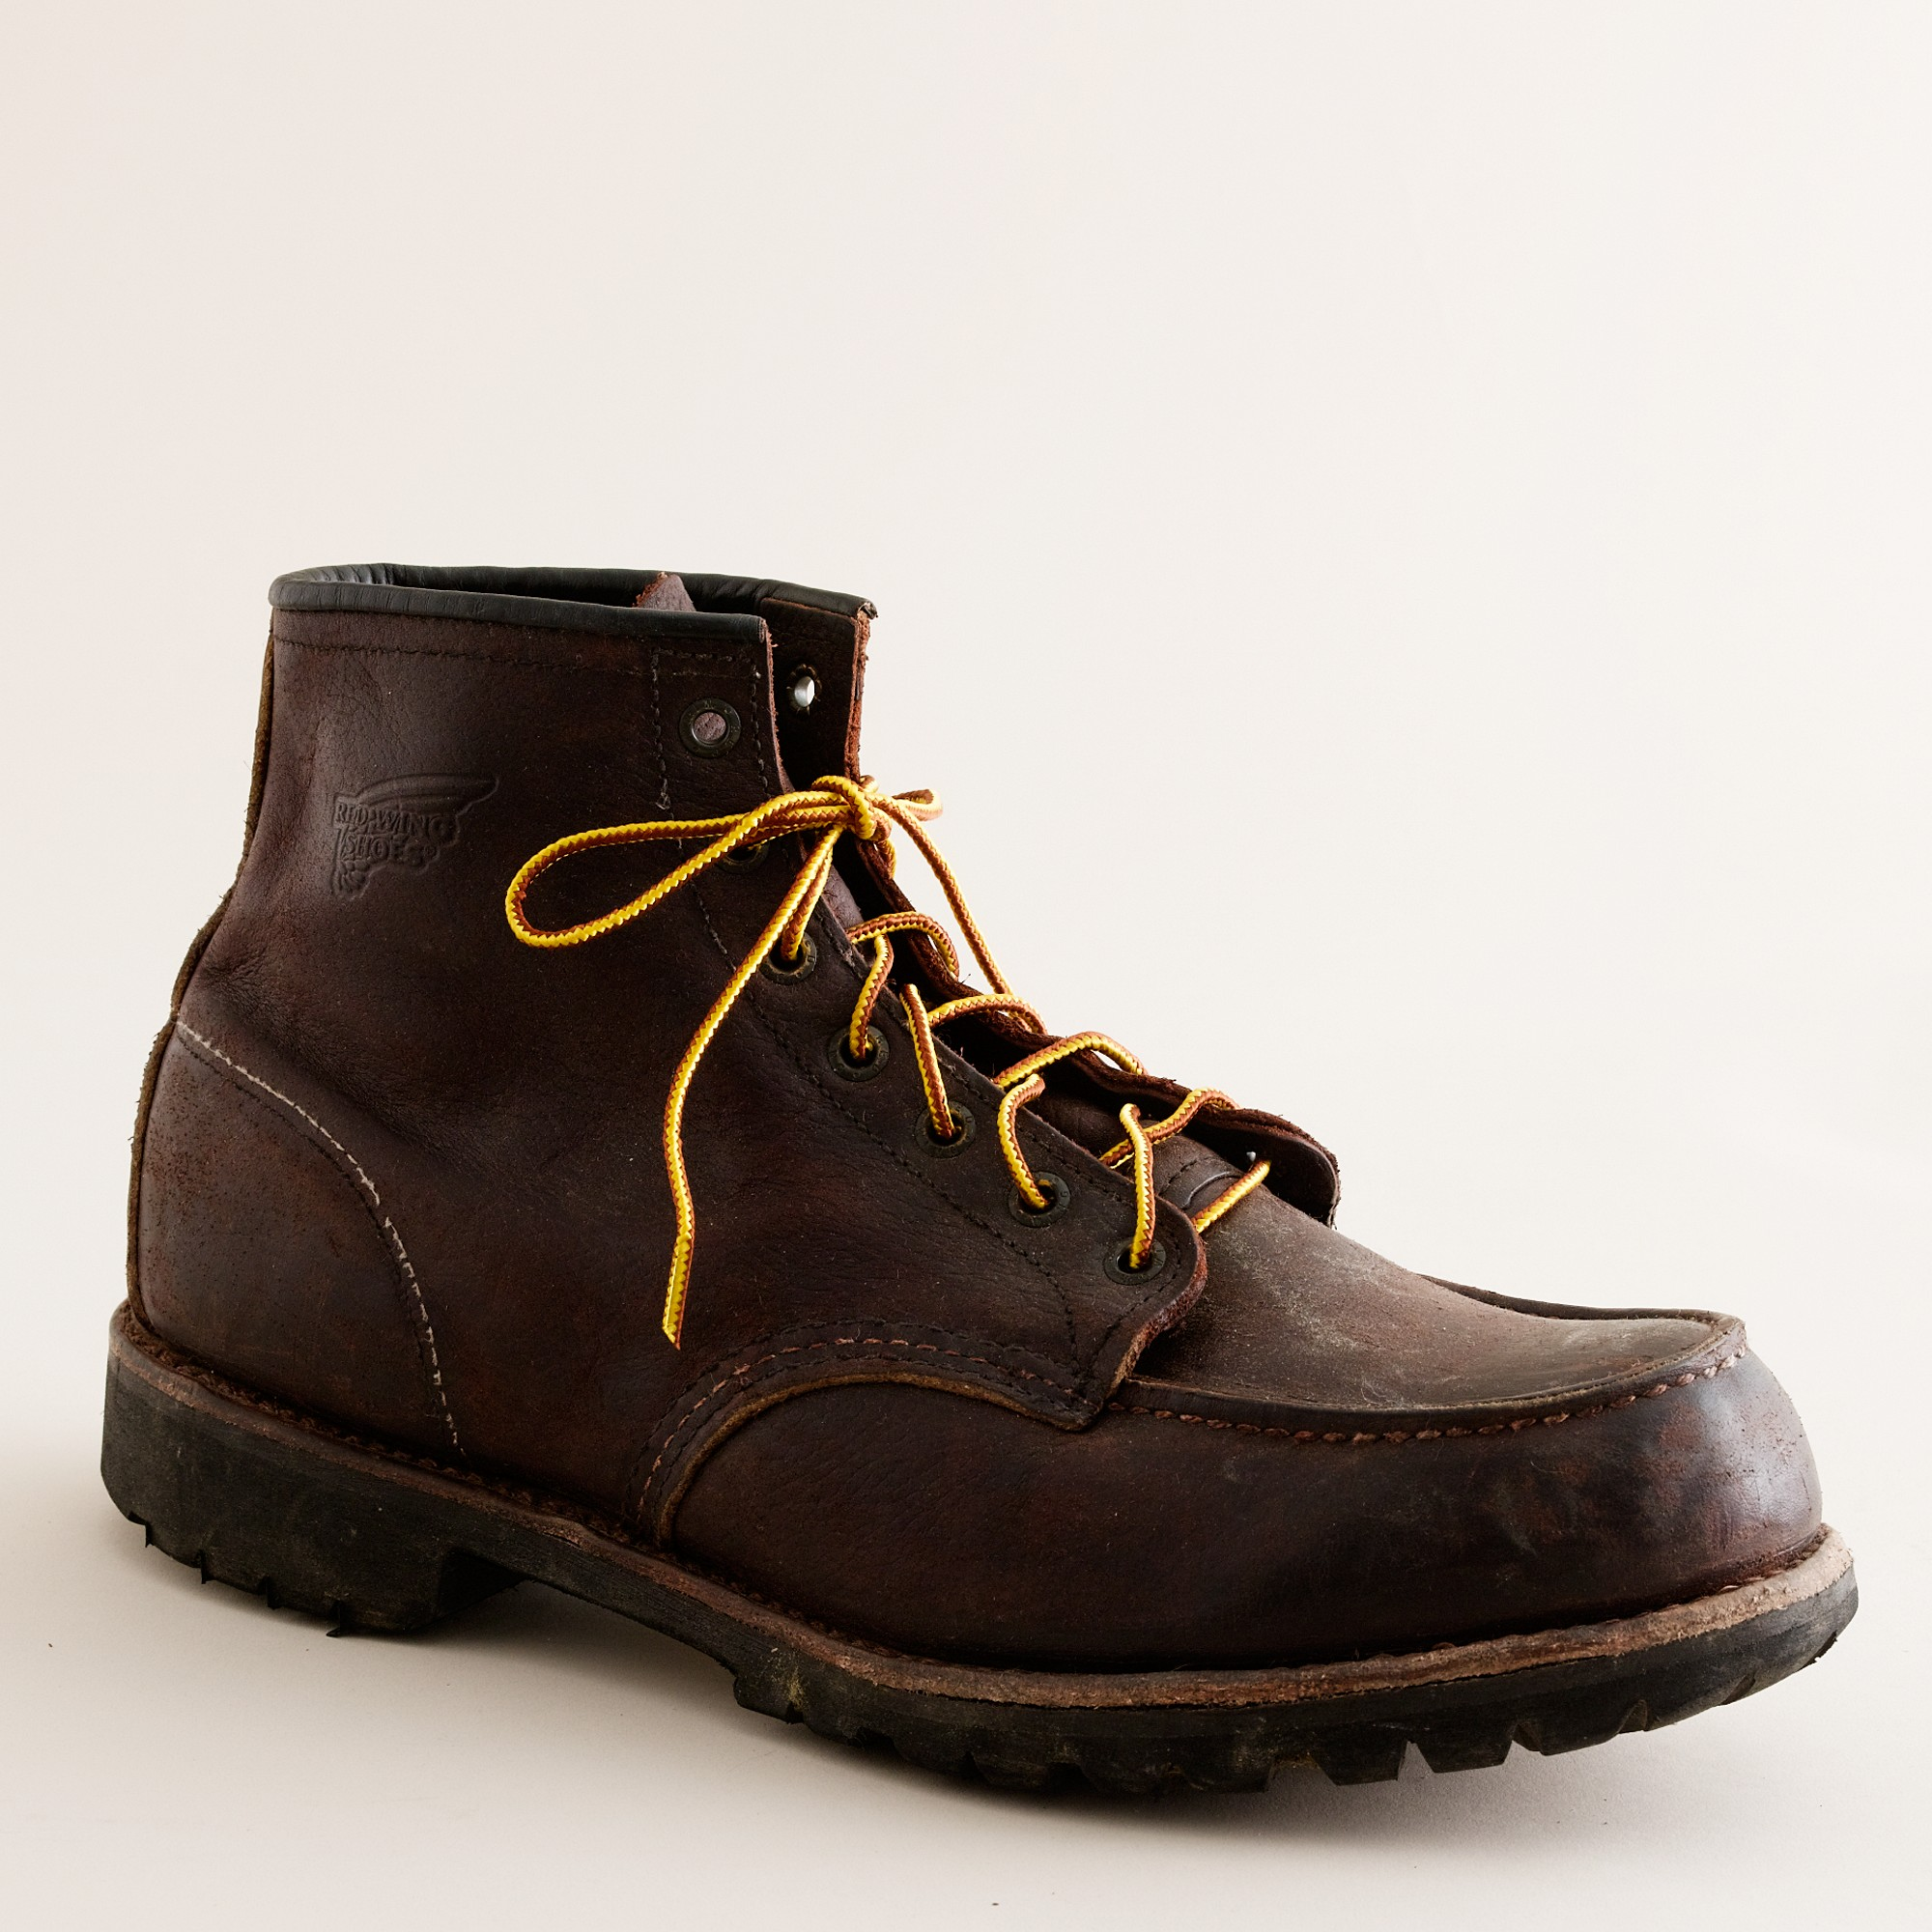 J.crew Red Wing® For J.crew Sandblasted Classic Boots in Brown for ...